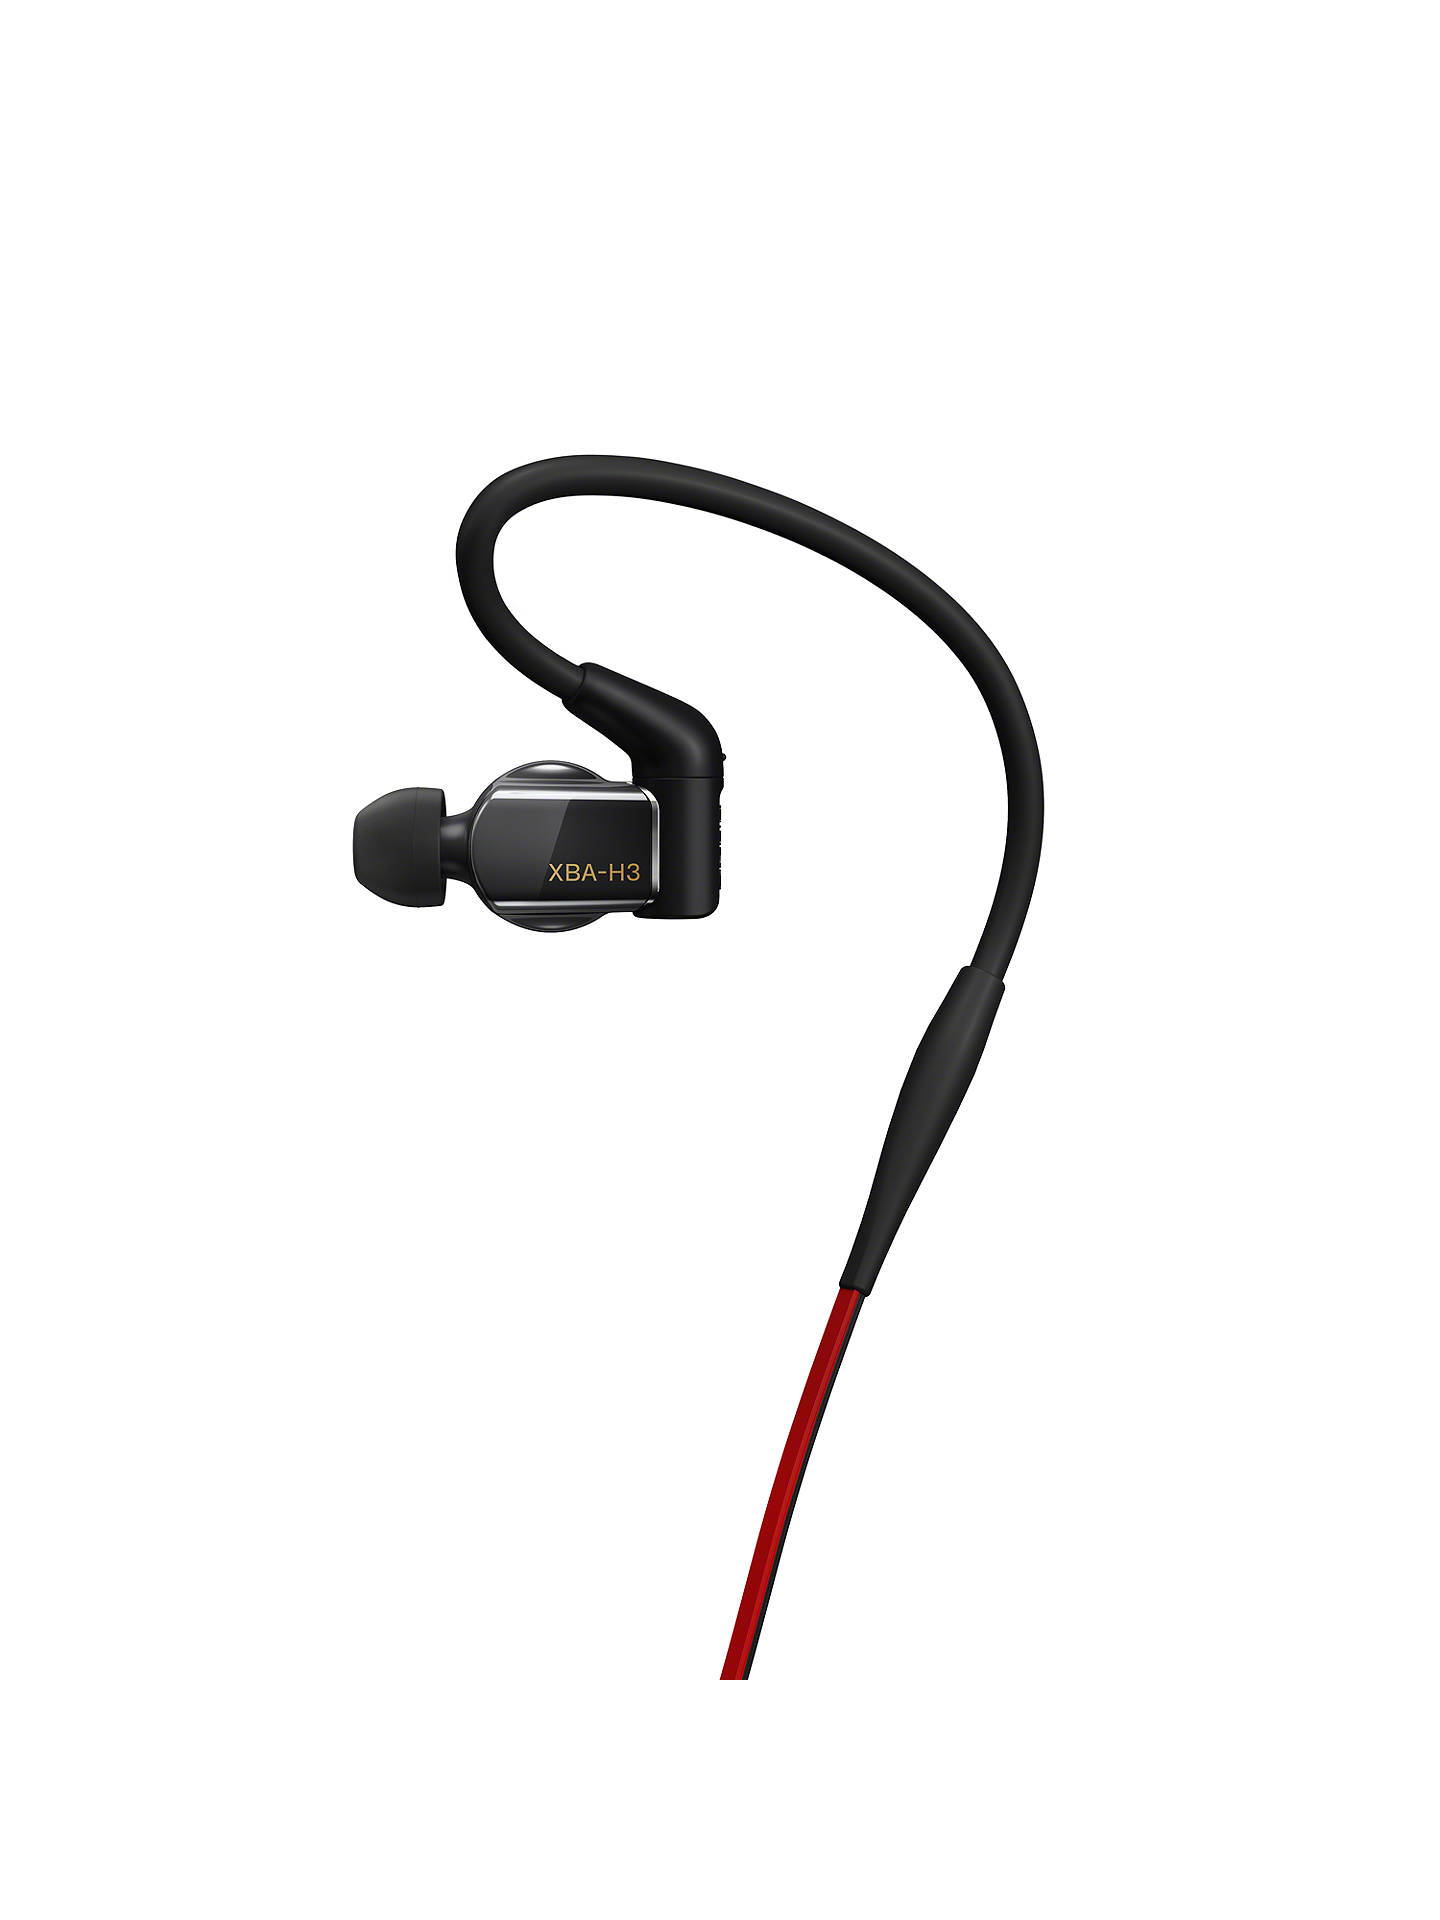 BuySony XBA-H3 In-Ear Headphones with Remote/Mic, Black Online at johnlewis.com